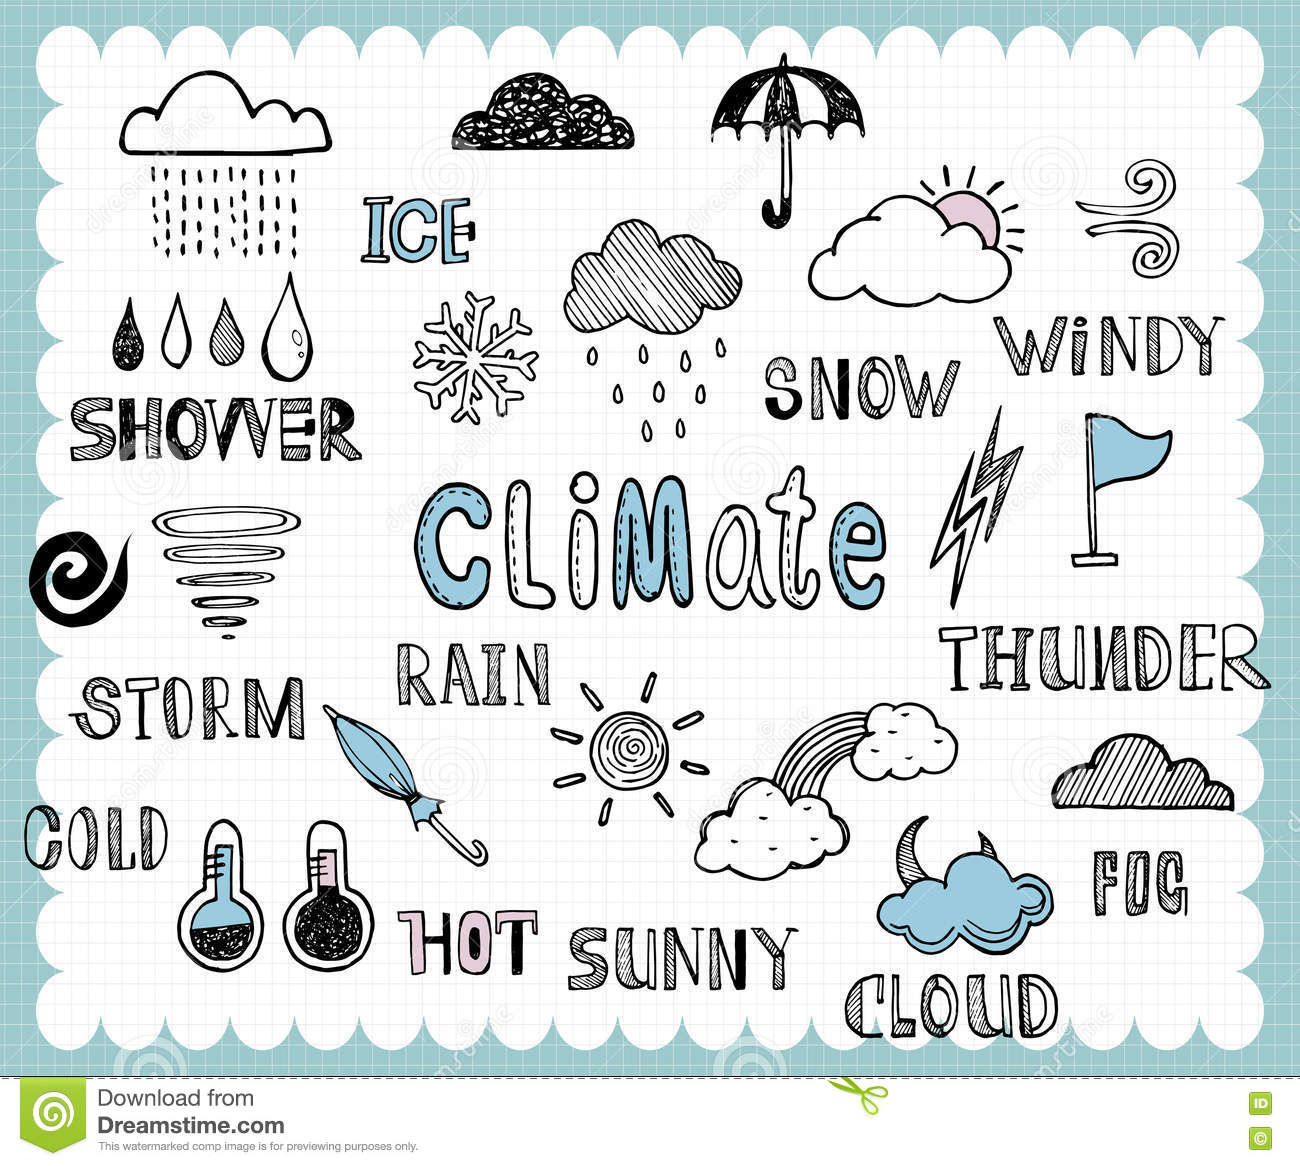 illustration with weather icons related words in hand drawn style and on the grid background all text and illustration is hand drawn